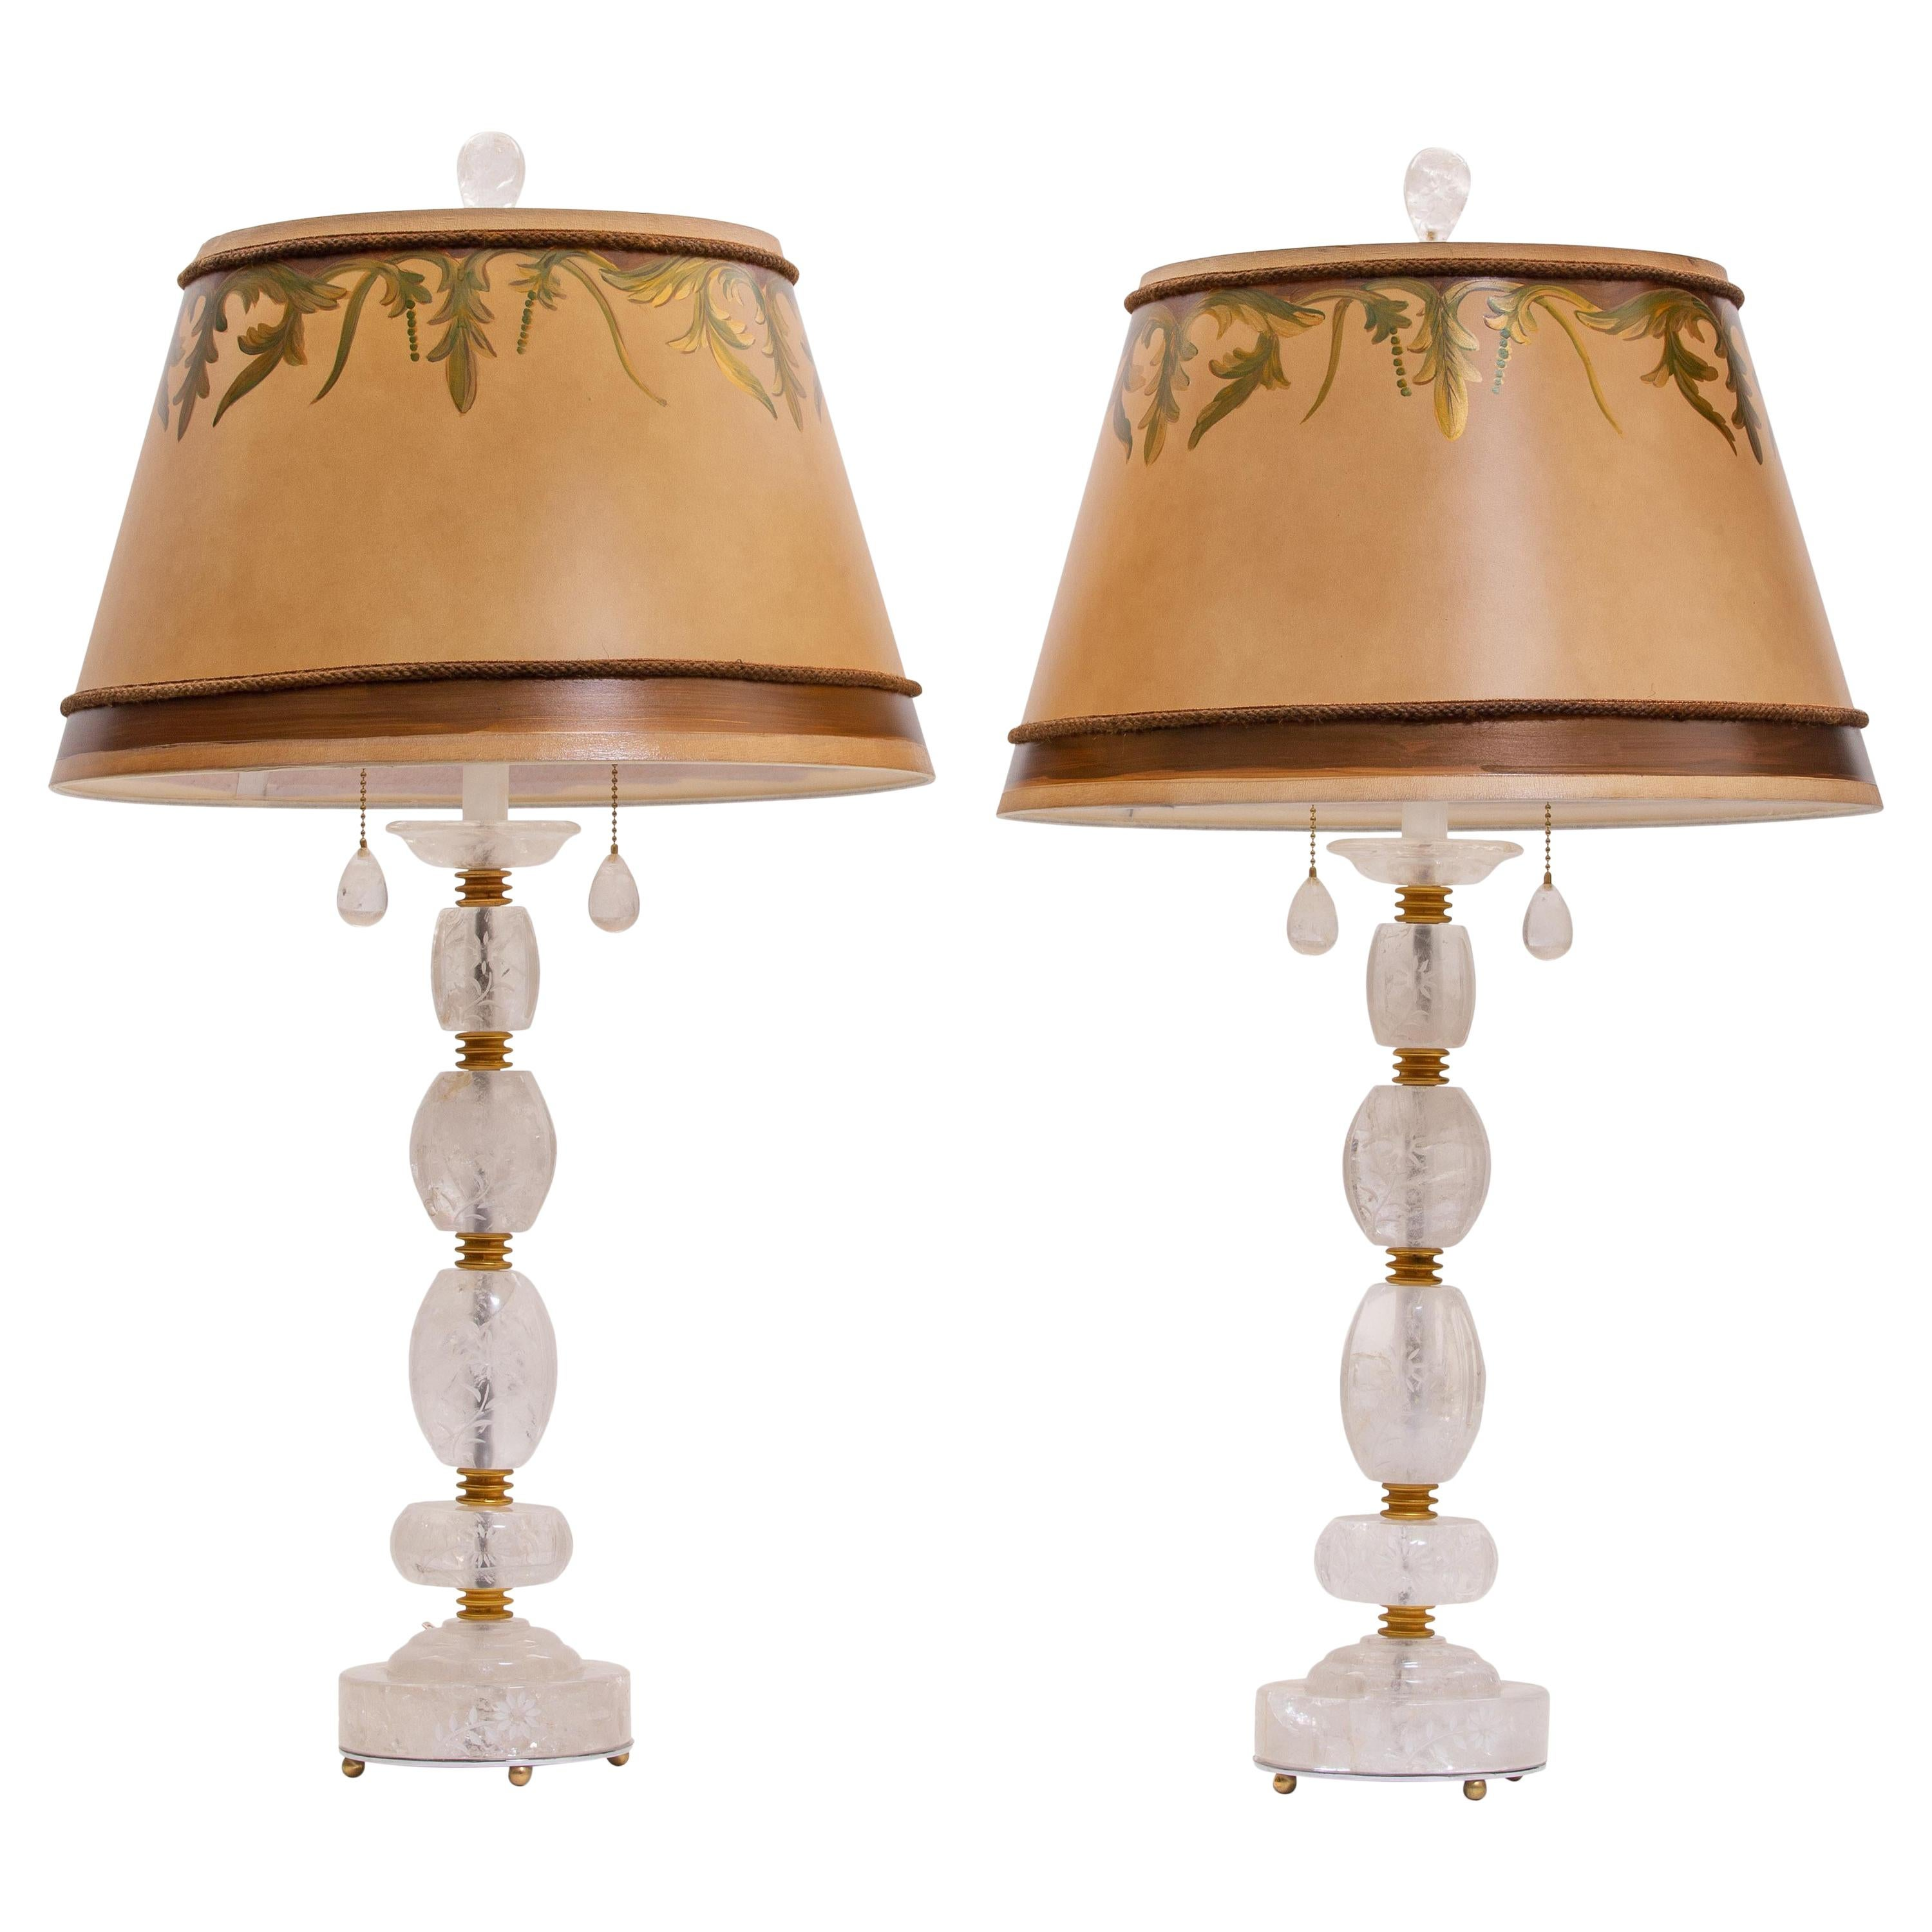 Pair of Engraved Rock Crystal Table Lamps